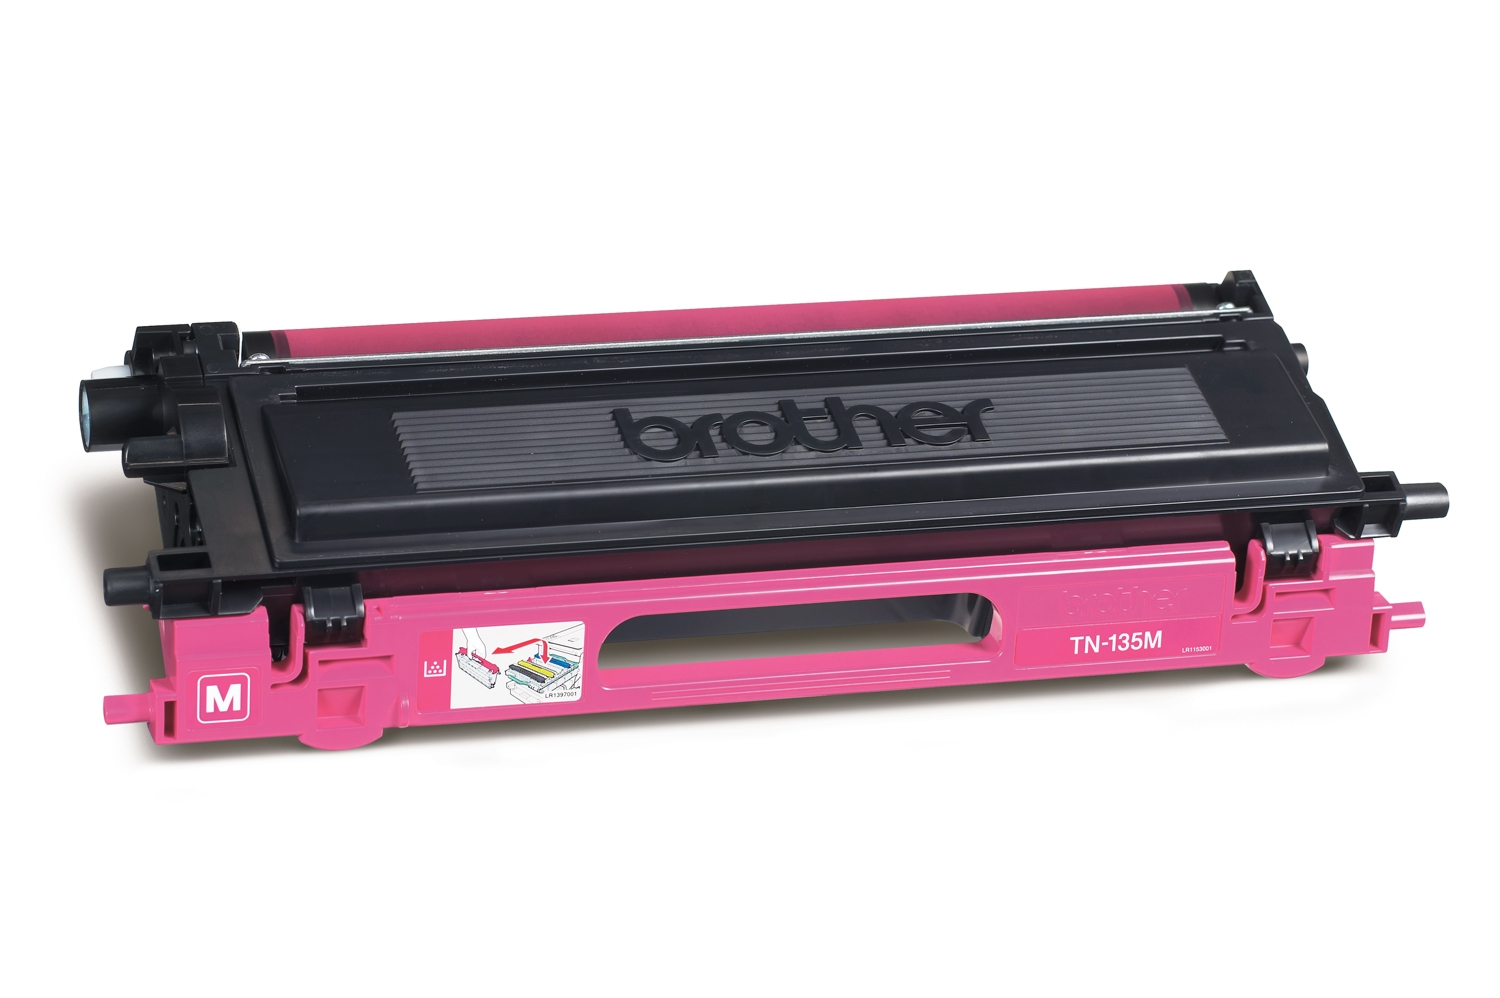 Remanufactured Brother TN135M Toner Cartridge Magenta 4K TN135M - rem01